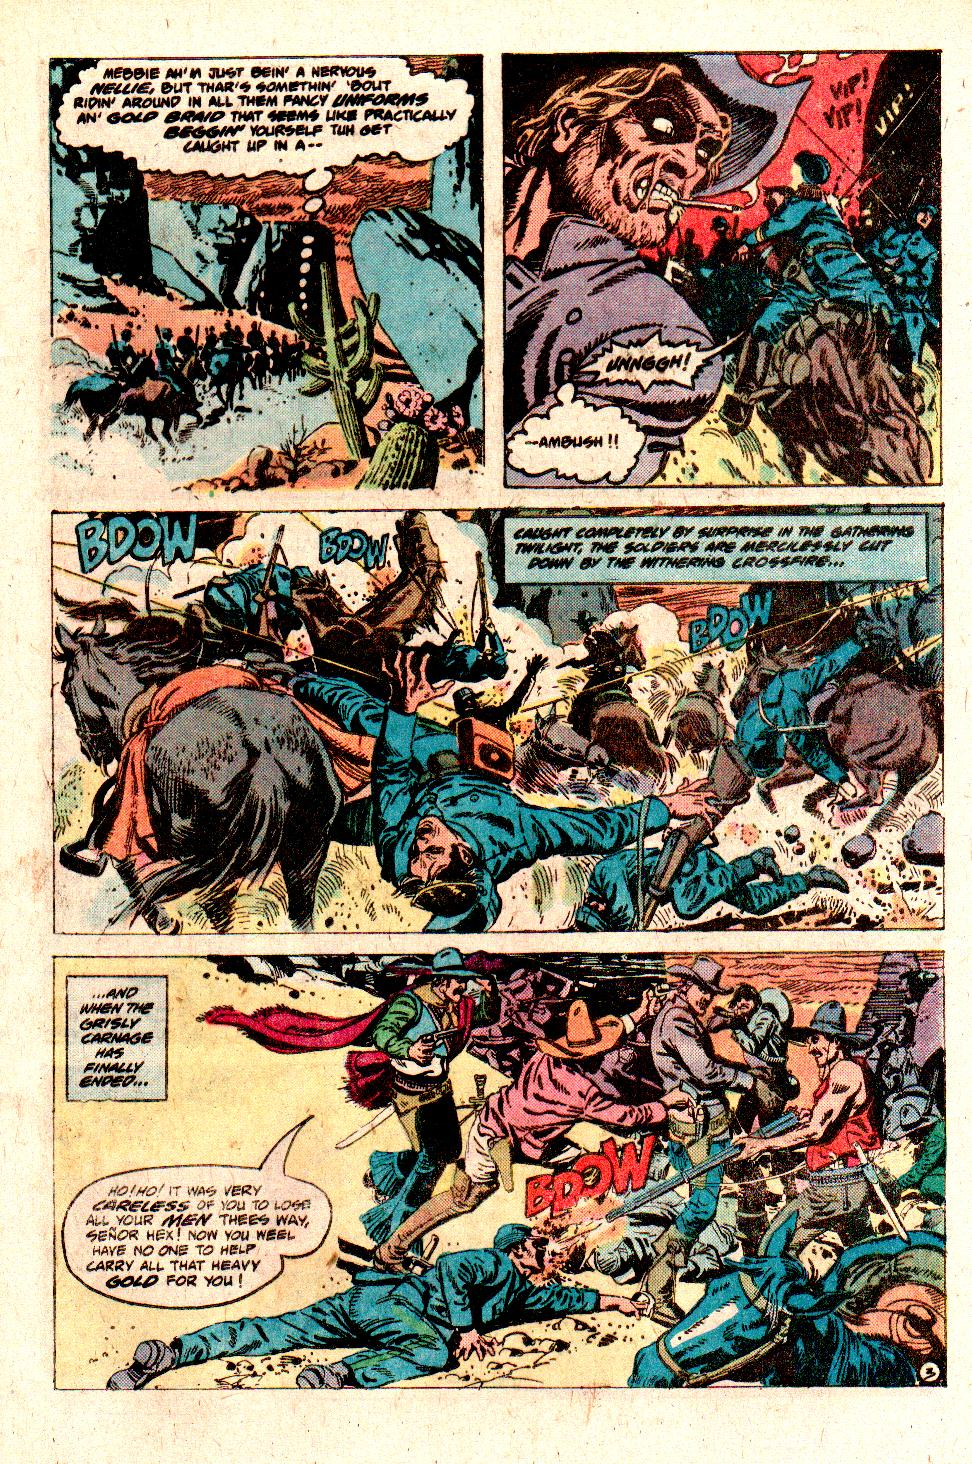 Jonah Hex (1977) #10 pg.05, lettered by Clem Robins.